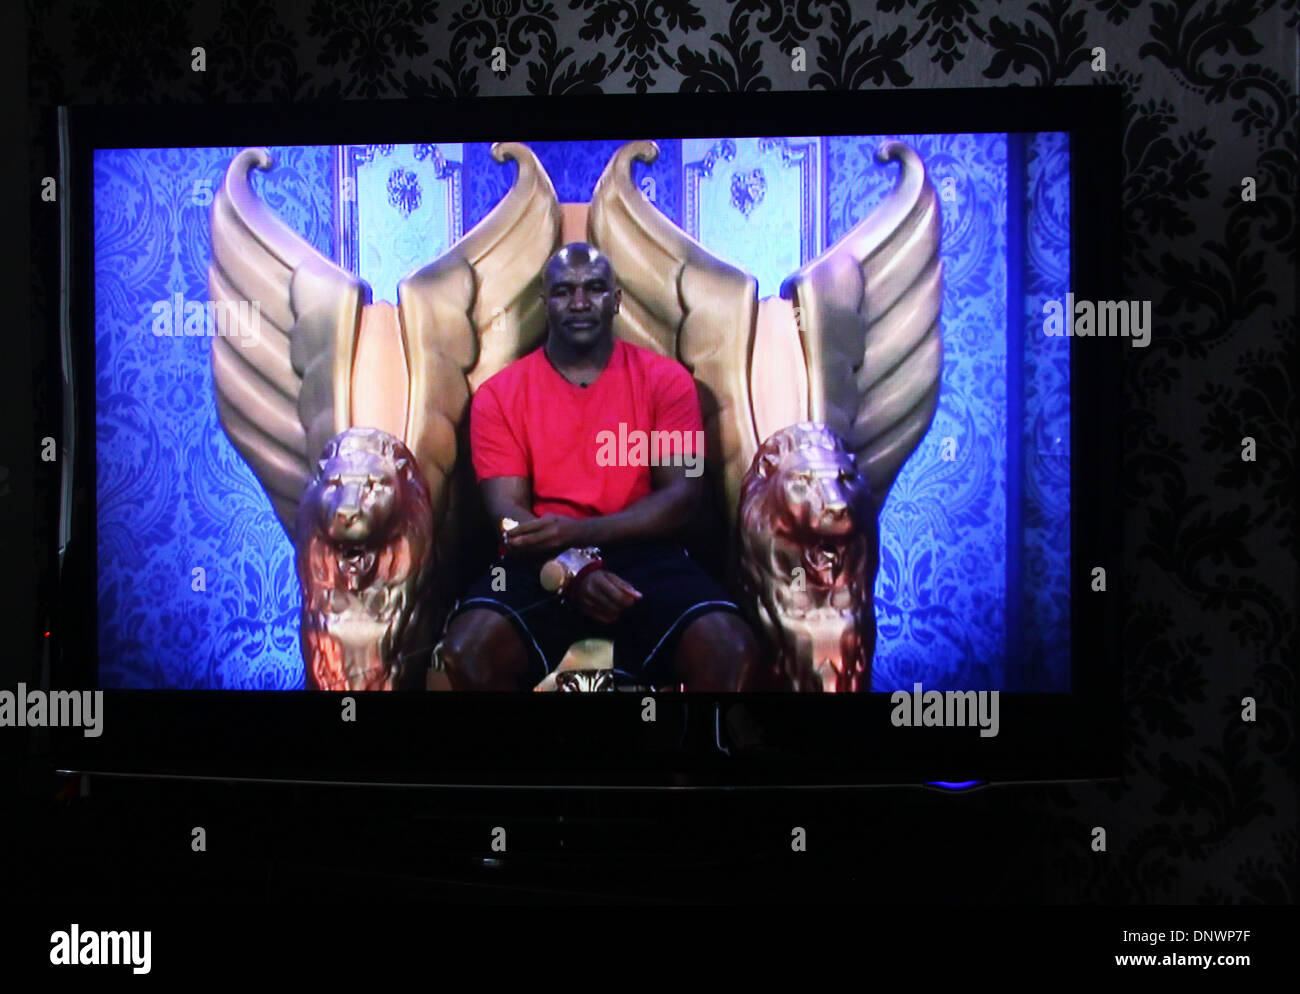 Celebrity Big Brother contestant and former world heavyweight boxing champion Evander Holyfield makes comments that - Stock Image